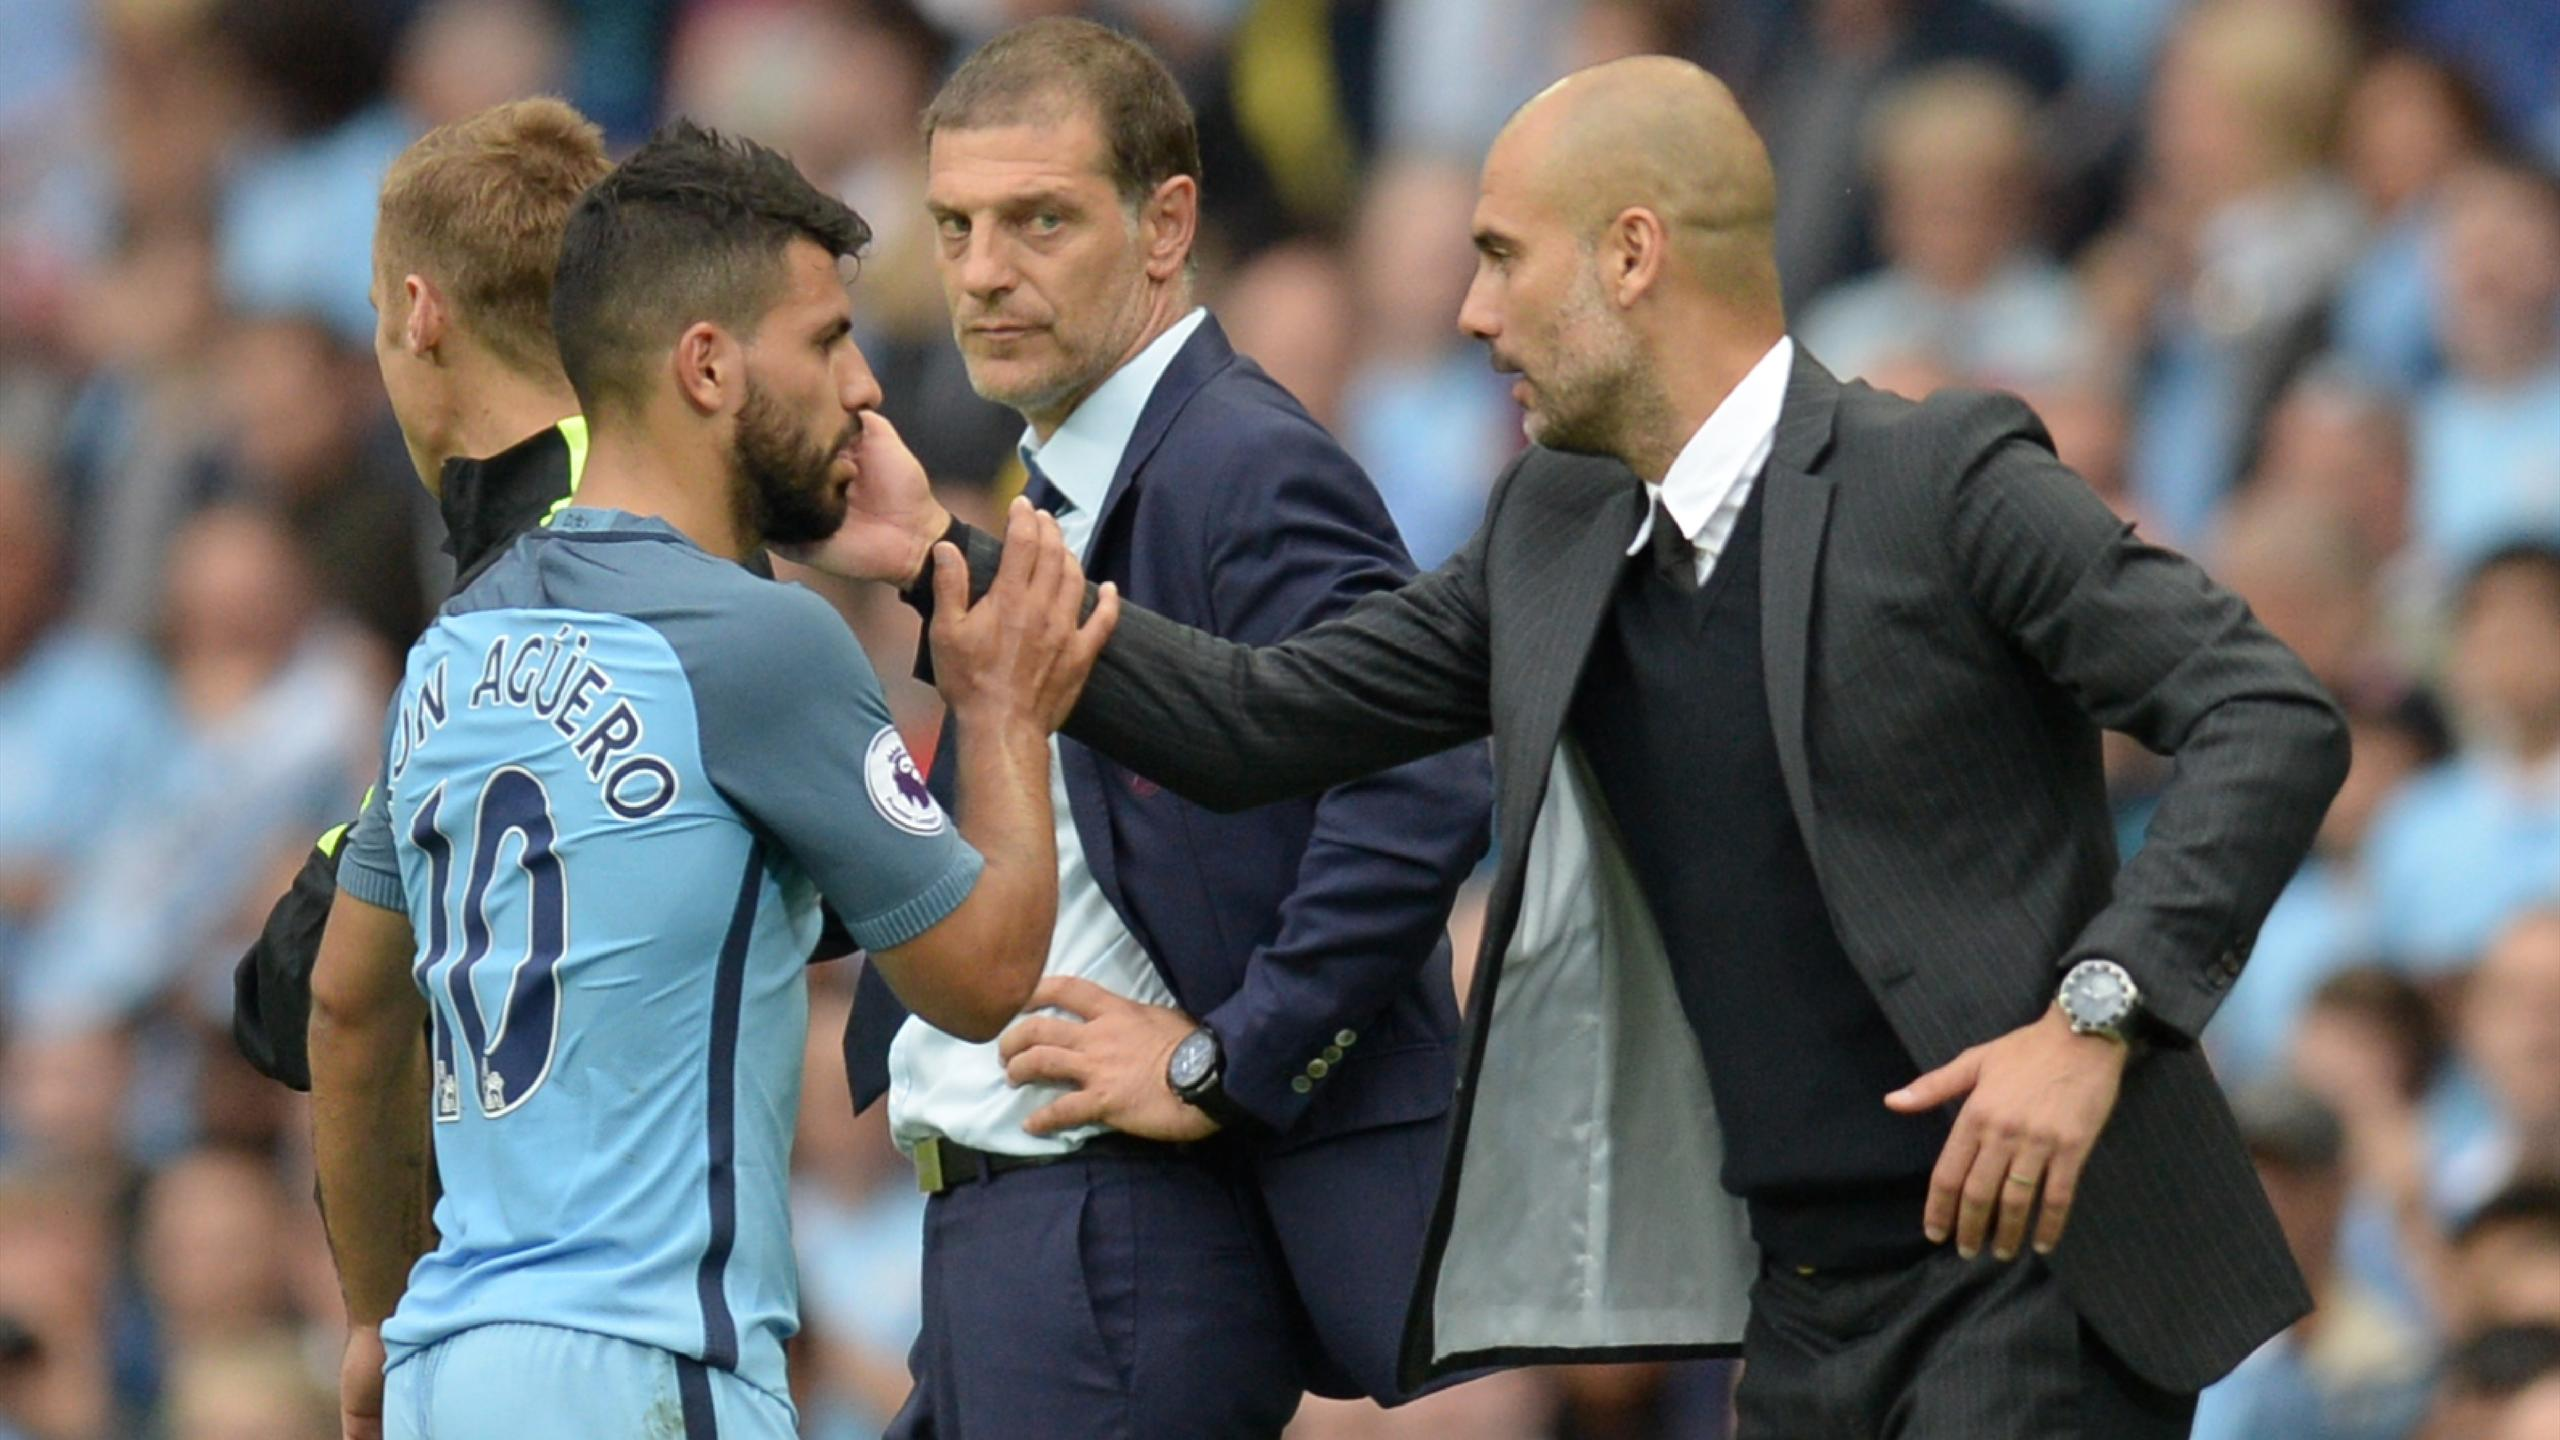 Manchester City's Spanish manager Pep Guardiola (R) greets Manchester City's Argentinian striker Sergio Aguero